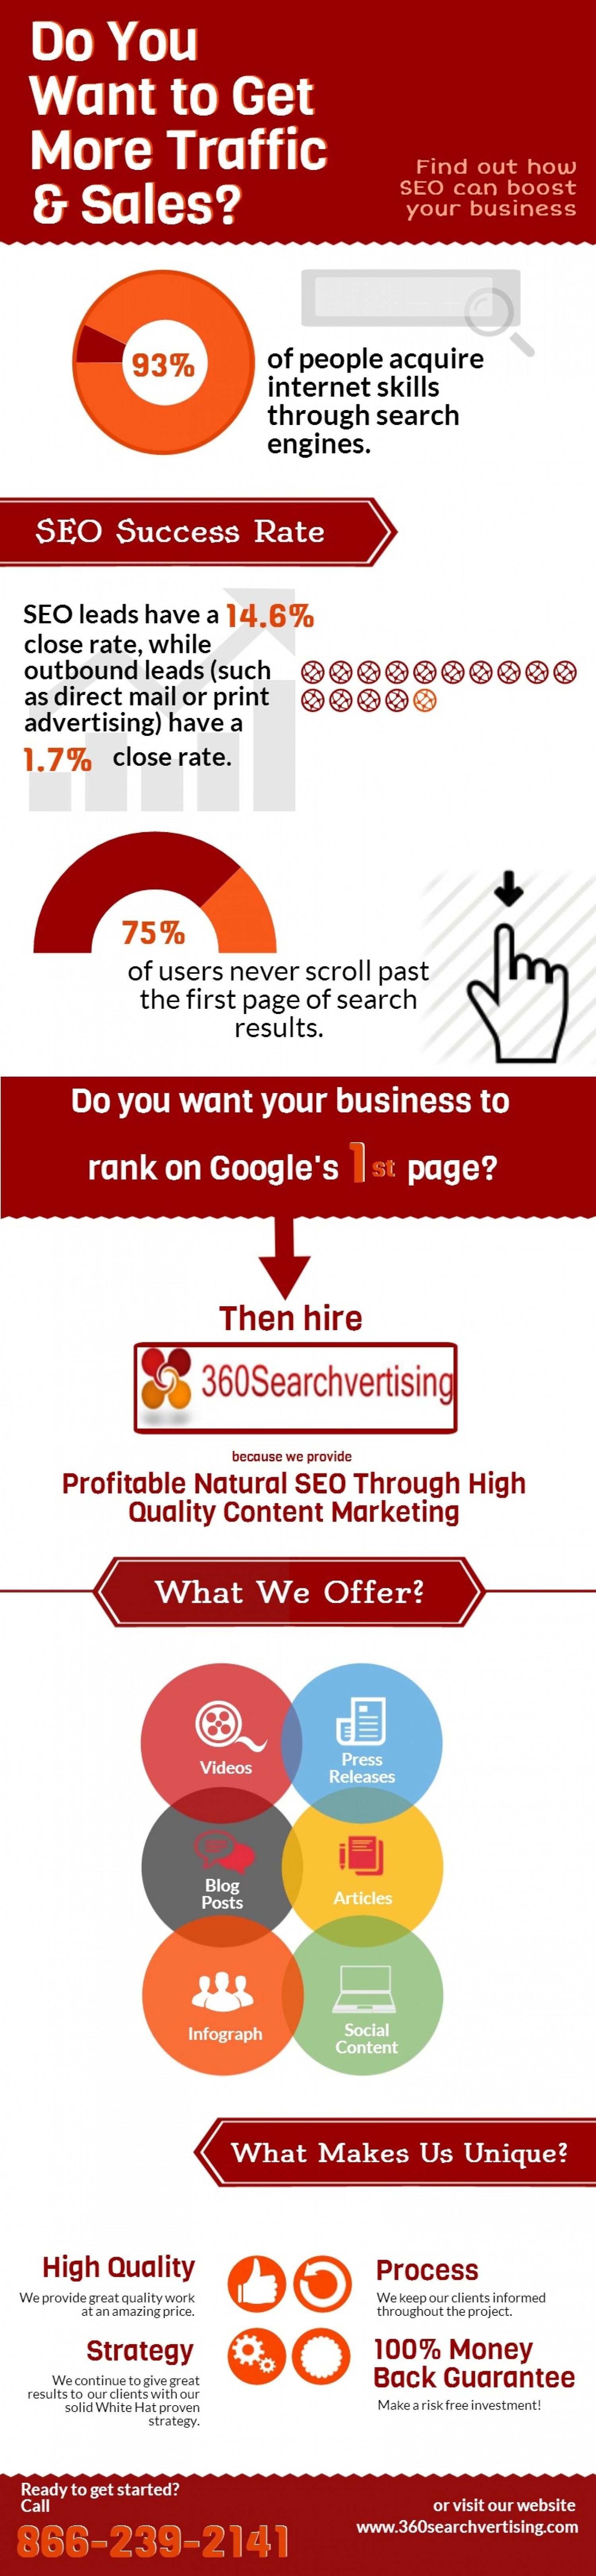 Do You Want to Get More Traffic and Sales? Infographic